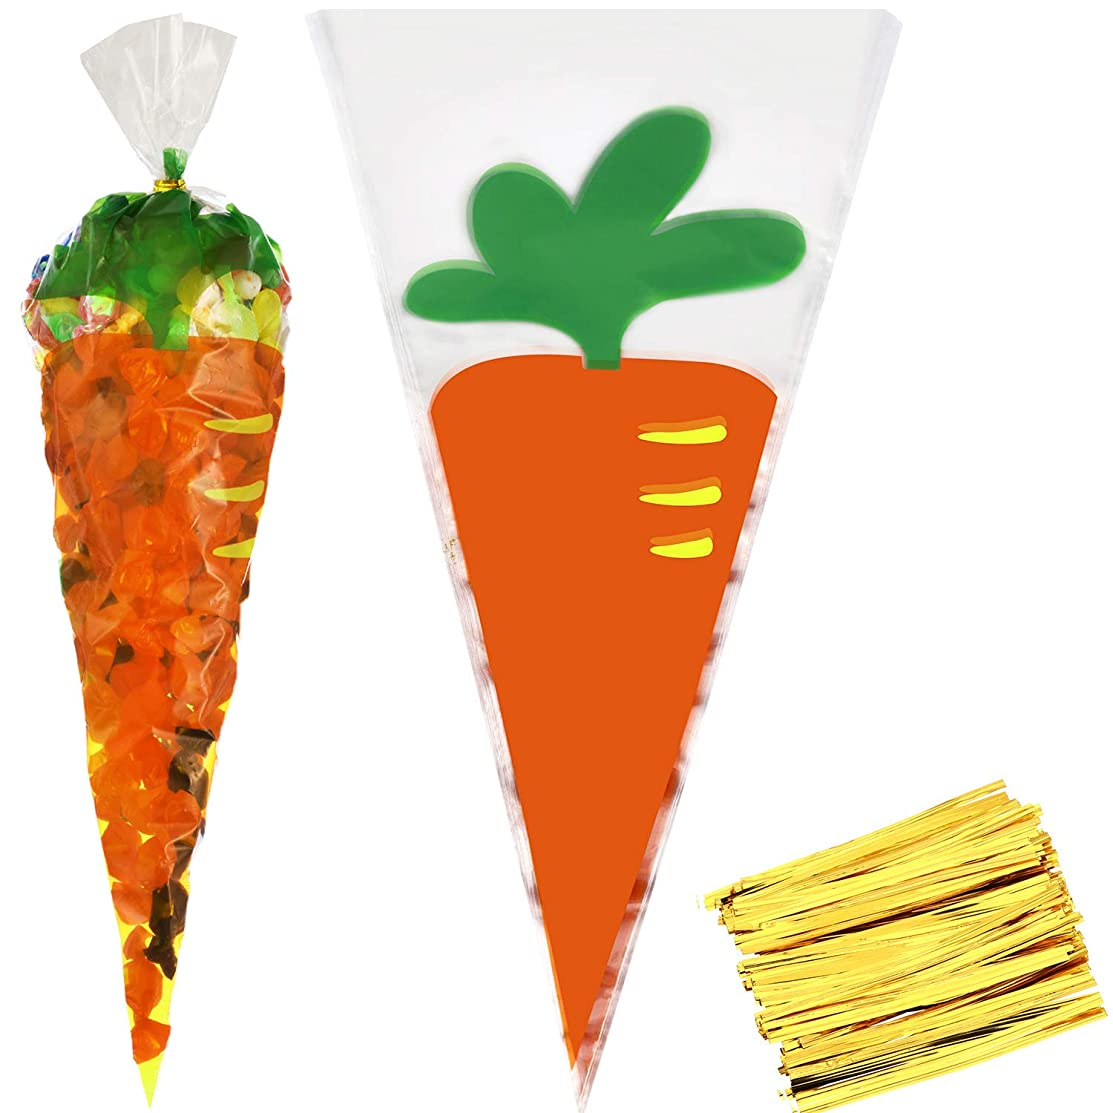 Yaomiao 100 Pieces Easter Cellophane Bags Bunny Pattern Plastic Treat Bags Carrot Goody Bags with Gold Twist Ties for Easter Party Supplies (Style 2)